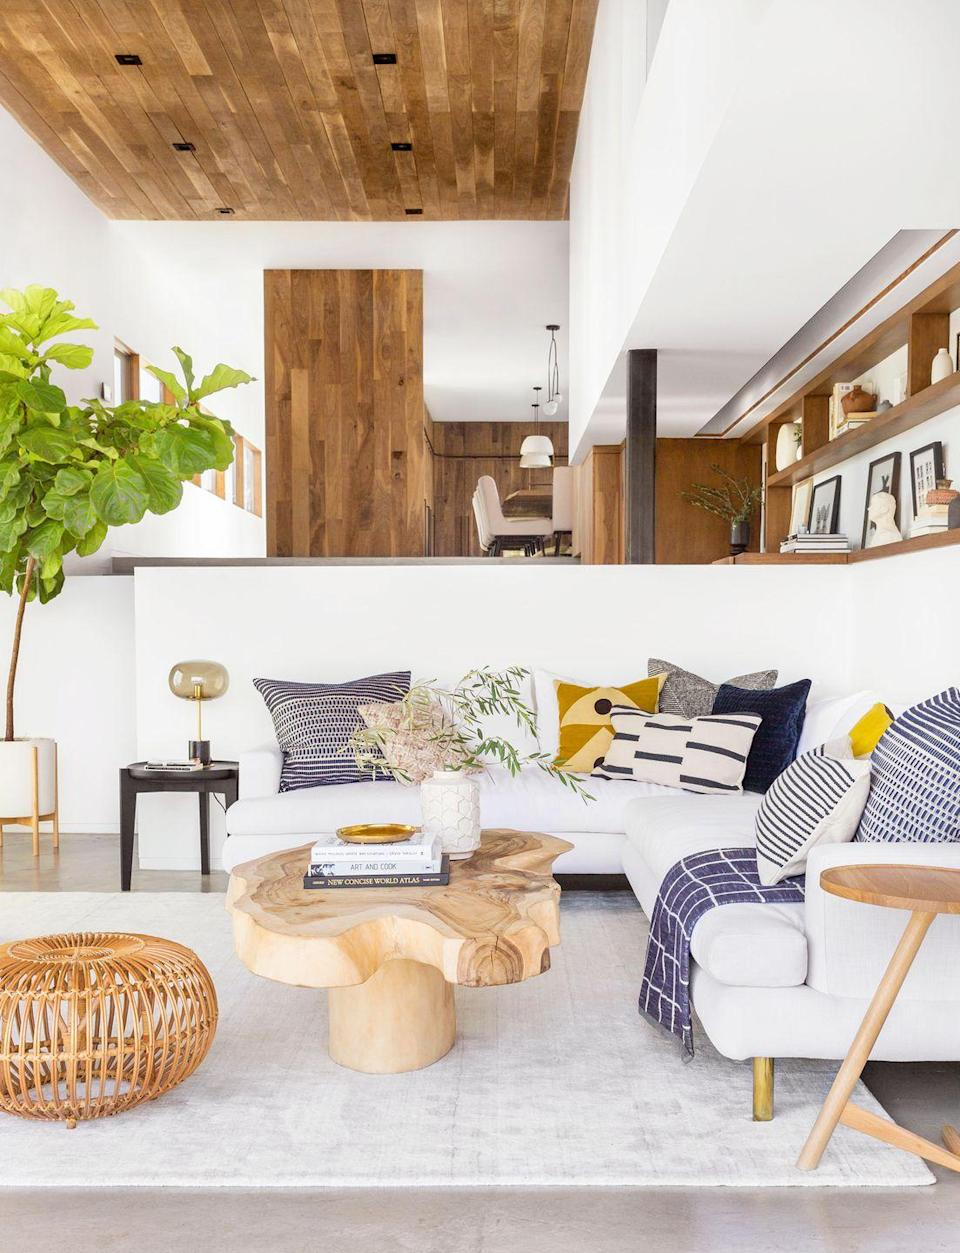 """<p><a href=""""https://stylebyemilyhenderson.com/"""" rel=""""nofollow noopener"""" target=""""_blank"""" data-ylk=""""slk:Emily Henderson"""" class=""""link rapid-noclick-resp"""">Emily Henderson</a> creates visual consistency in this spacious, open environment by bringing the wood walls in the dining room into the entryway and living room—but this time, on the ceiling. </p>"""